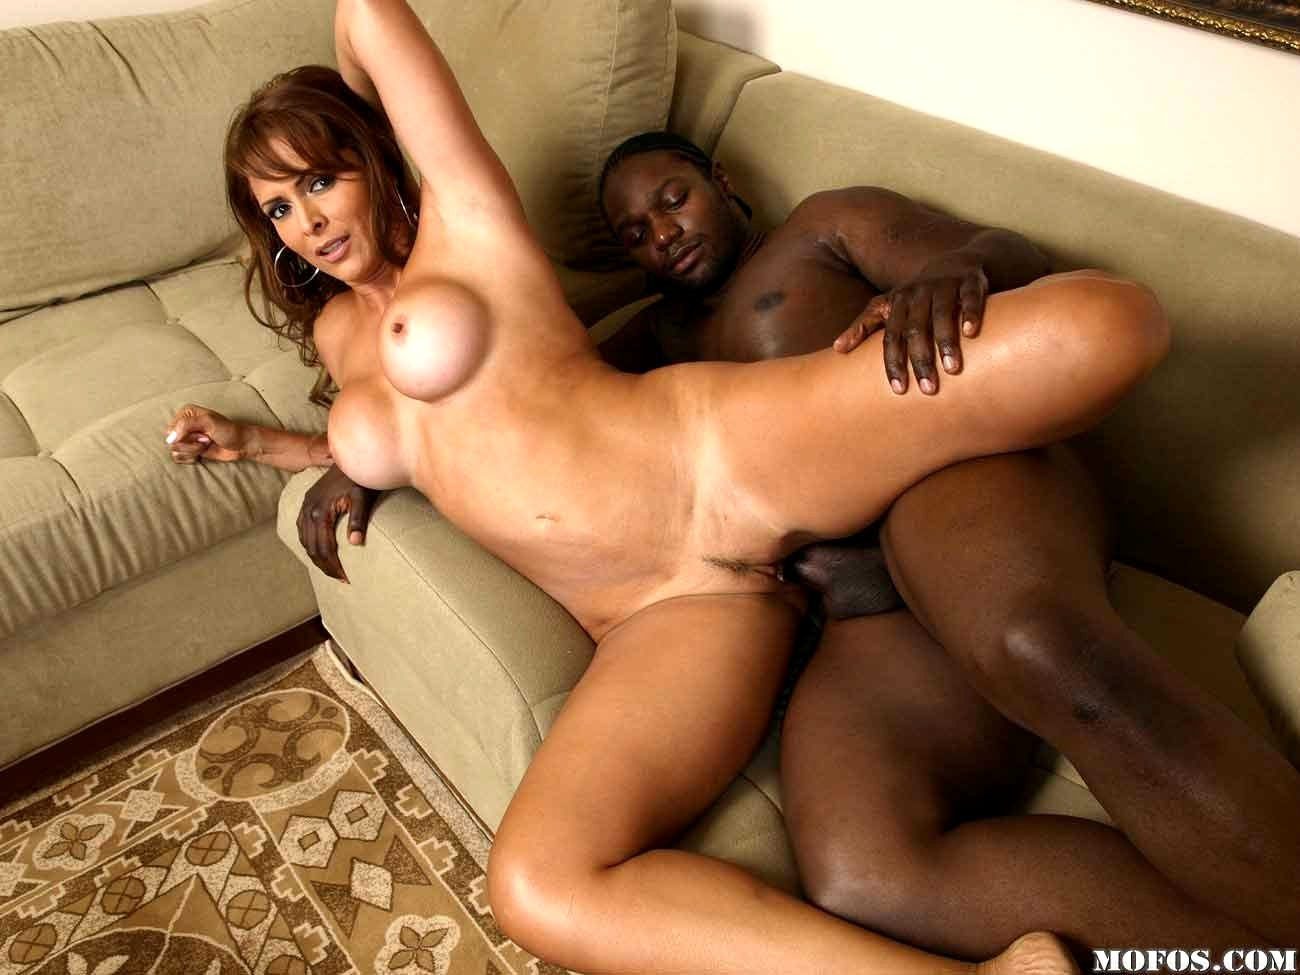 Watch latina milf interracial sex